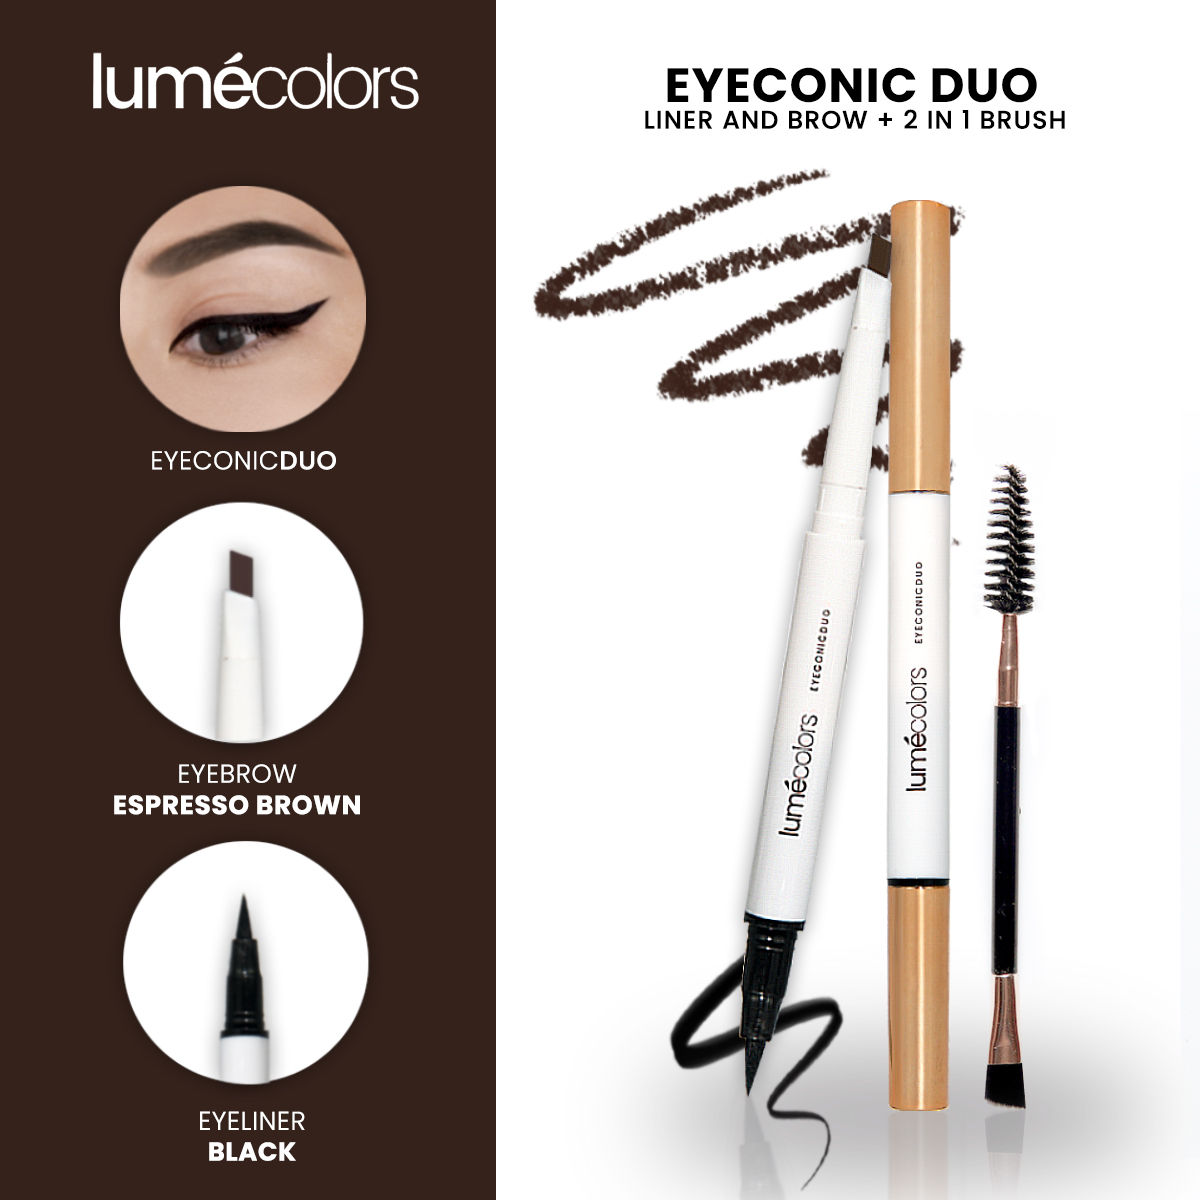 Lumecolors Eyeconic Duo Liner and brow 2 in 1 With brush - Espresso Brown